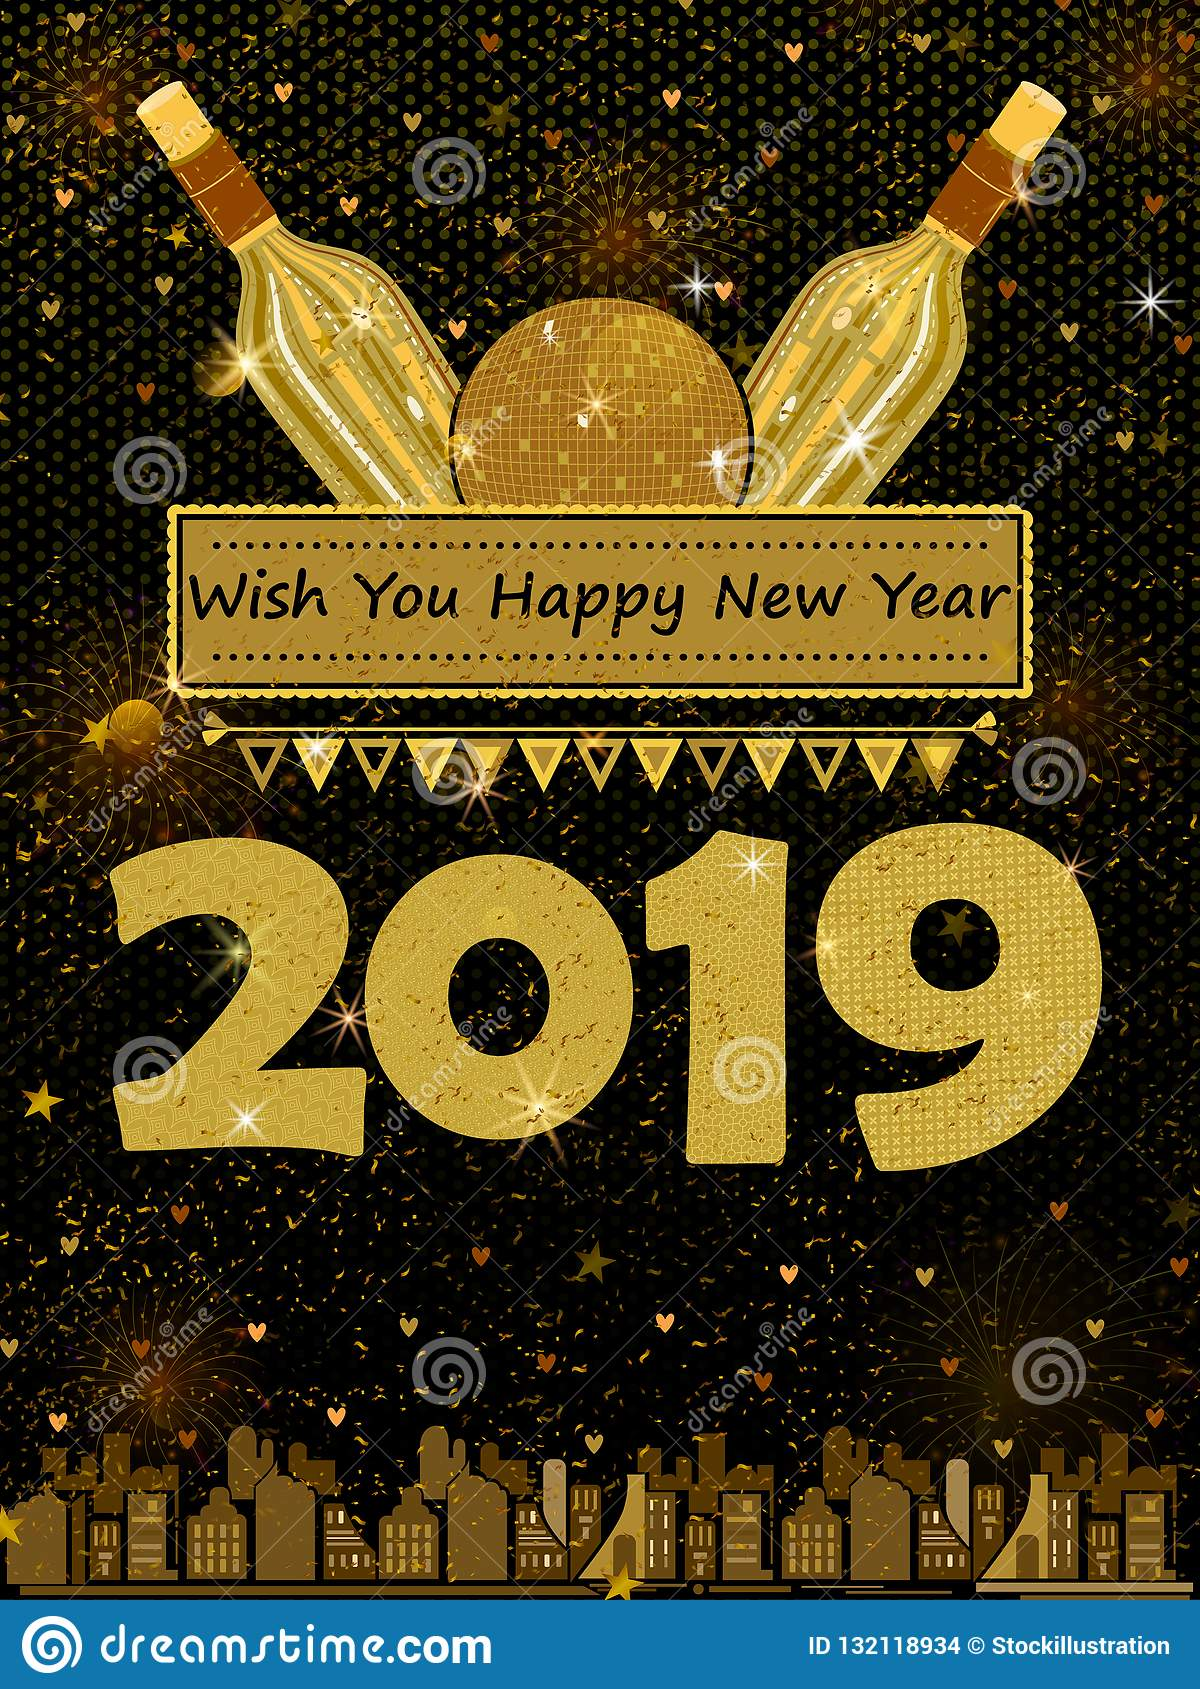 Happy New Year 2019 Wishes Greeting Card Template ...